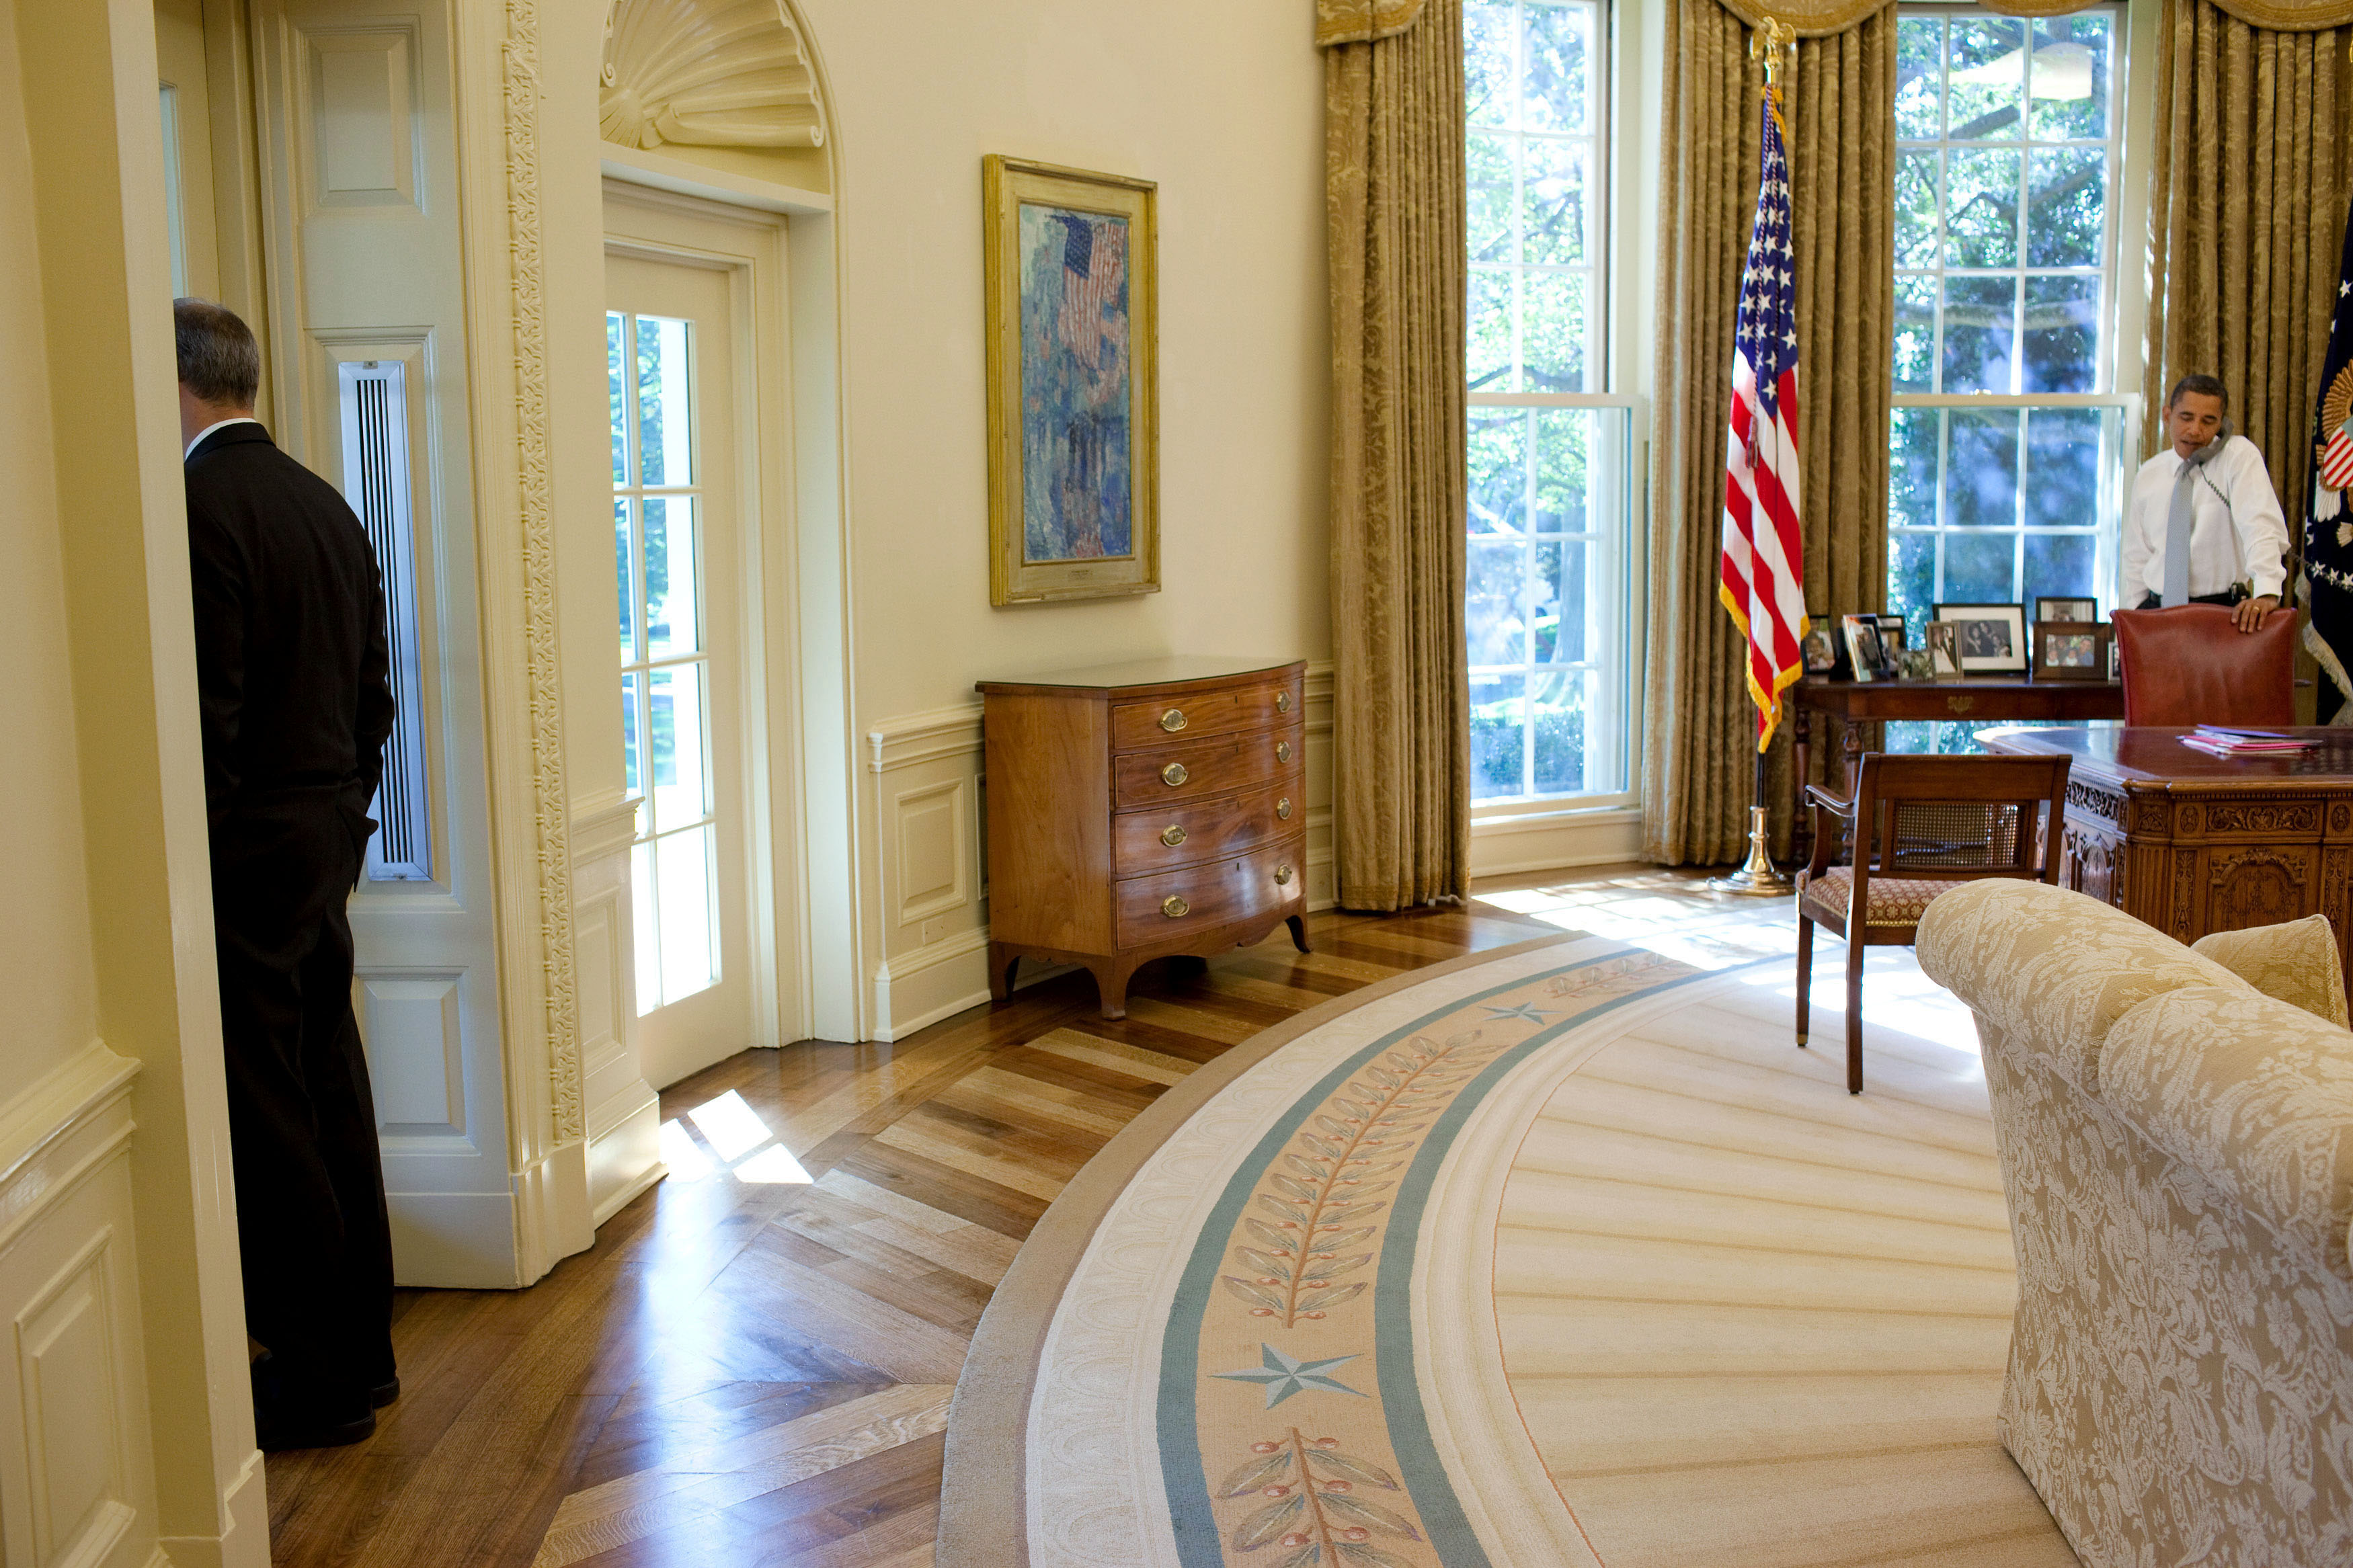 File:Barack Obama in the Oval Office, Phil Schiliro looks out the window.jpg